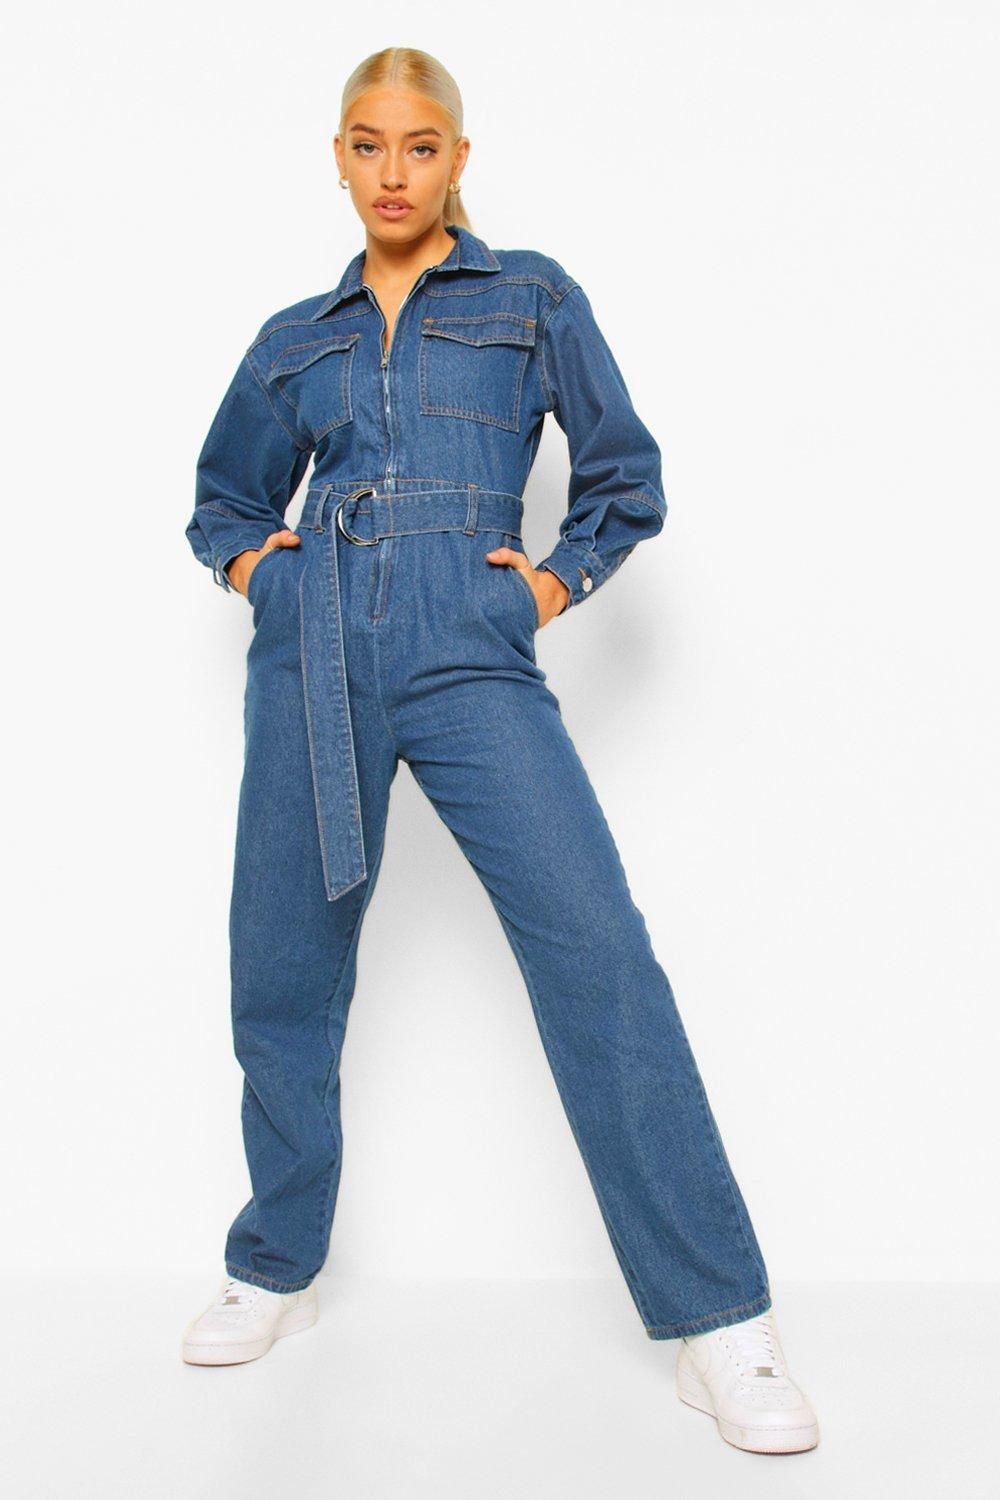 1940s Style Clothing & 40s Fashion Womens Balloon Sleeve Belted Denim Jumpsuit - Blue - 12 $25.00 AT vintagedancer.com